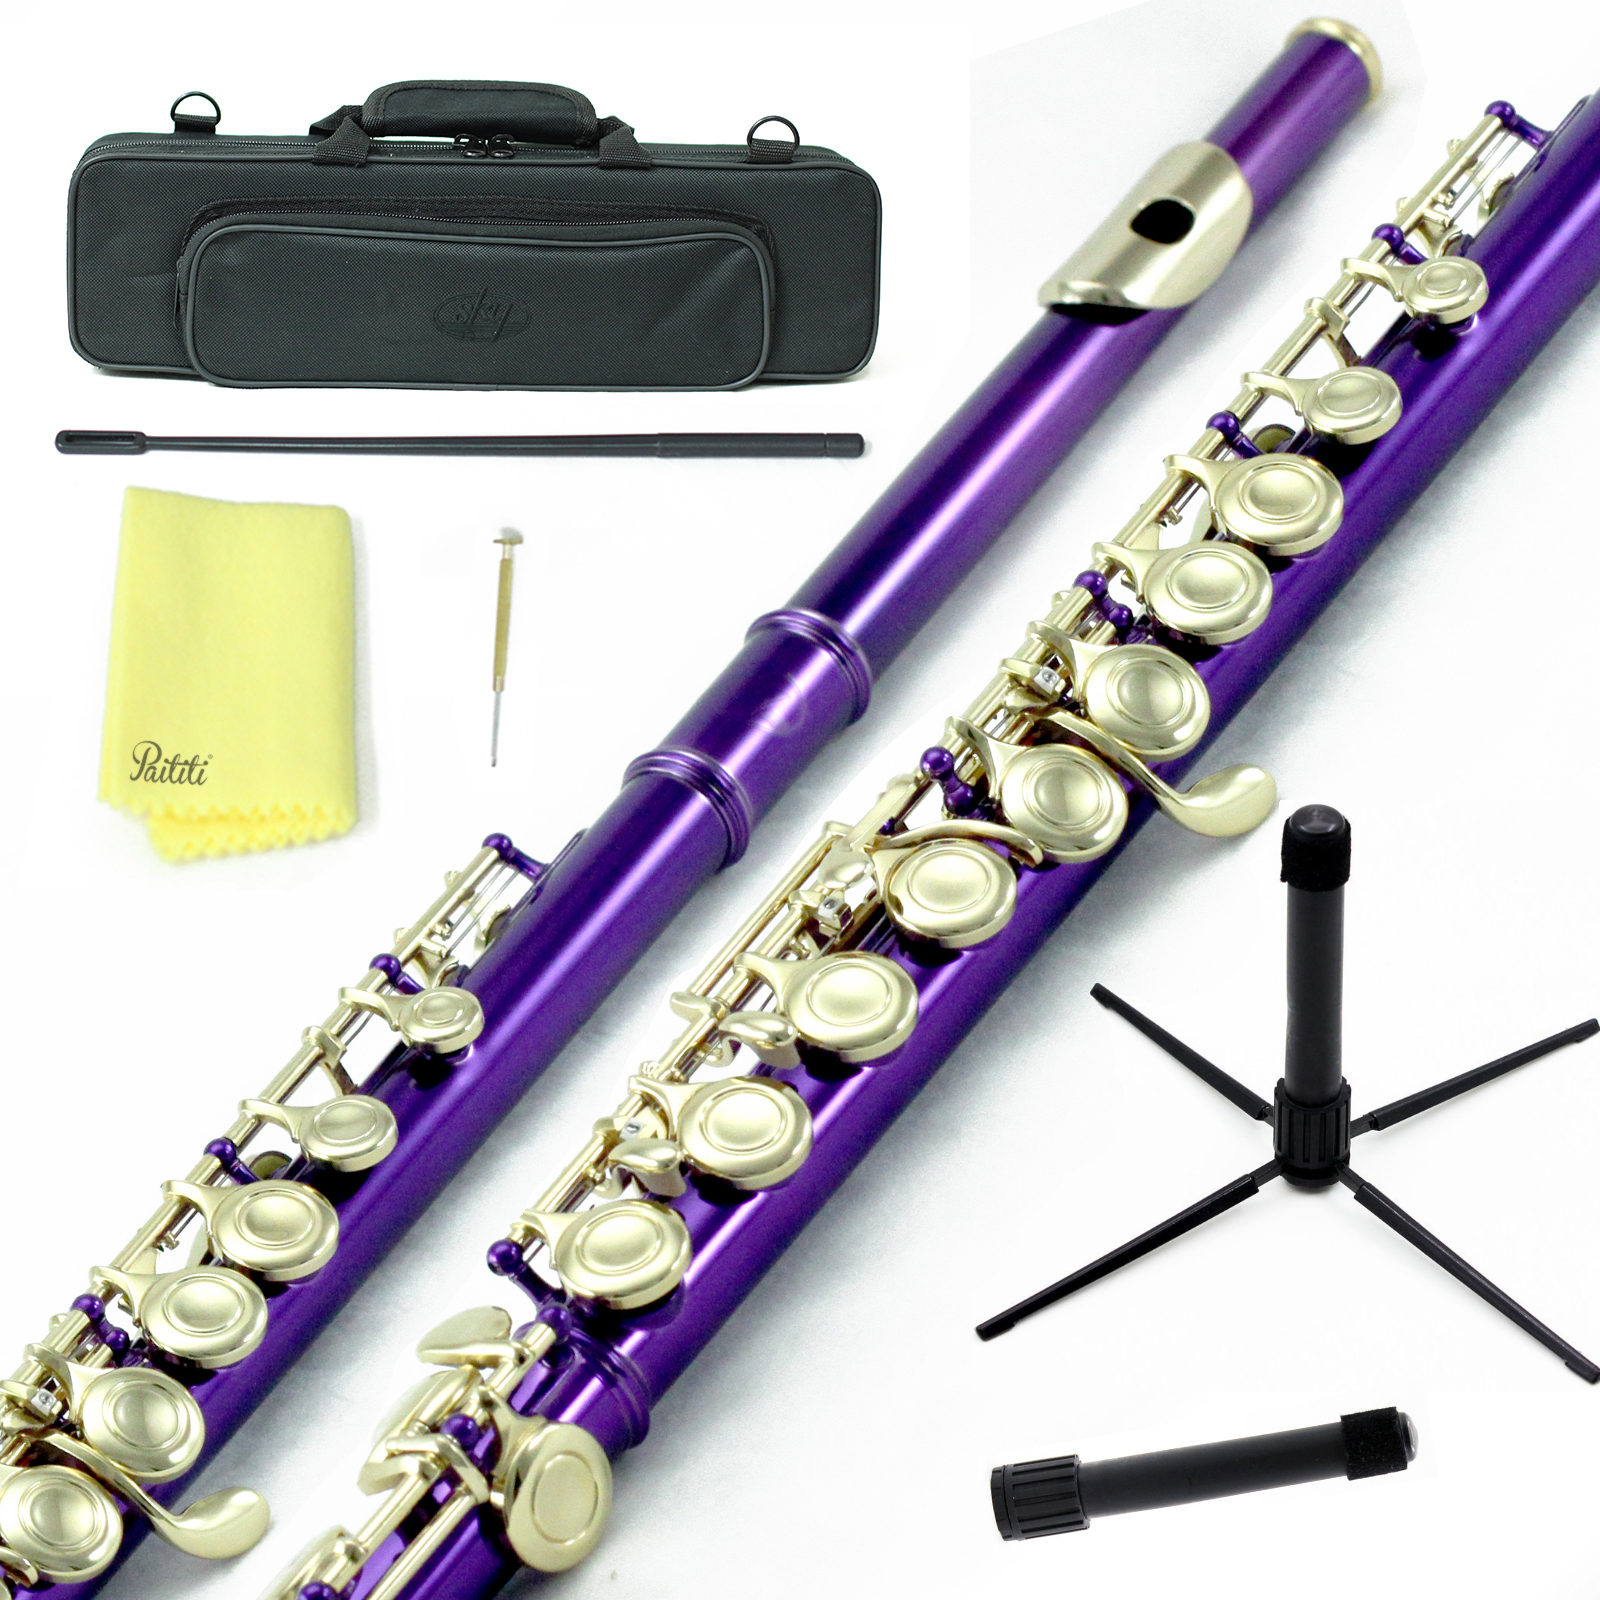 Sky Closed Hole C Flute with Lightweight Case, Cleaning Rod, Cloth, Joint Grease and Screw Driver - Purple/Gold